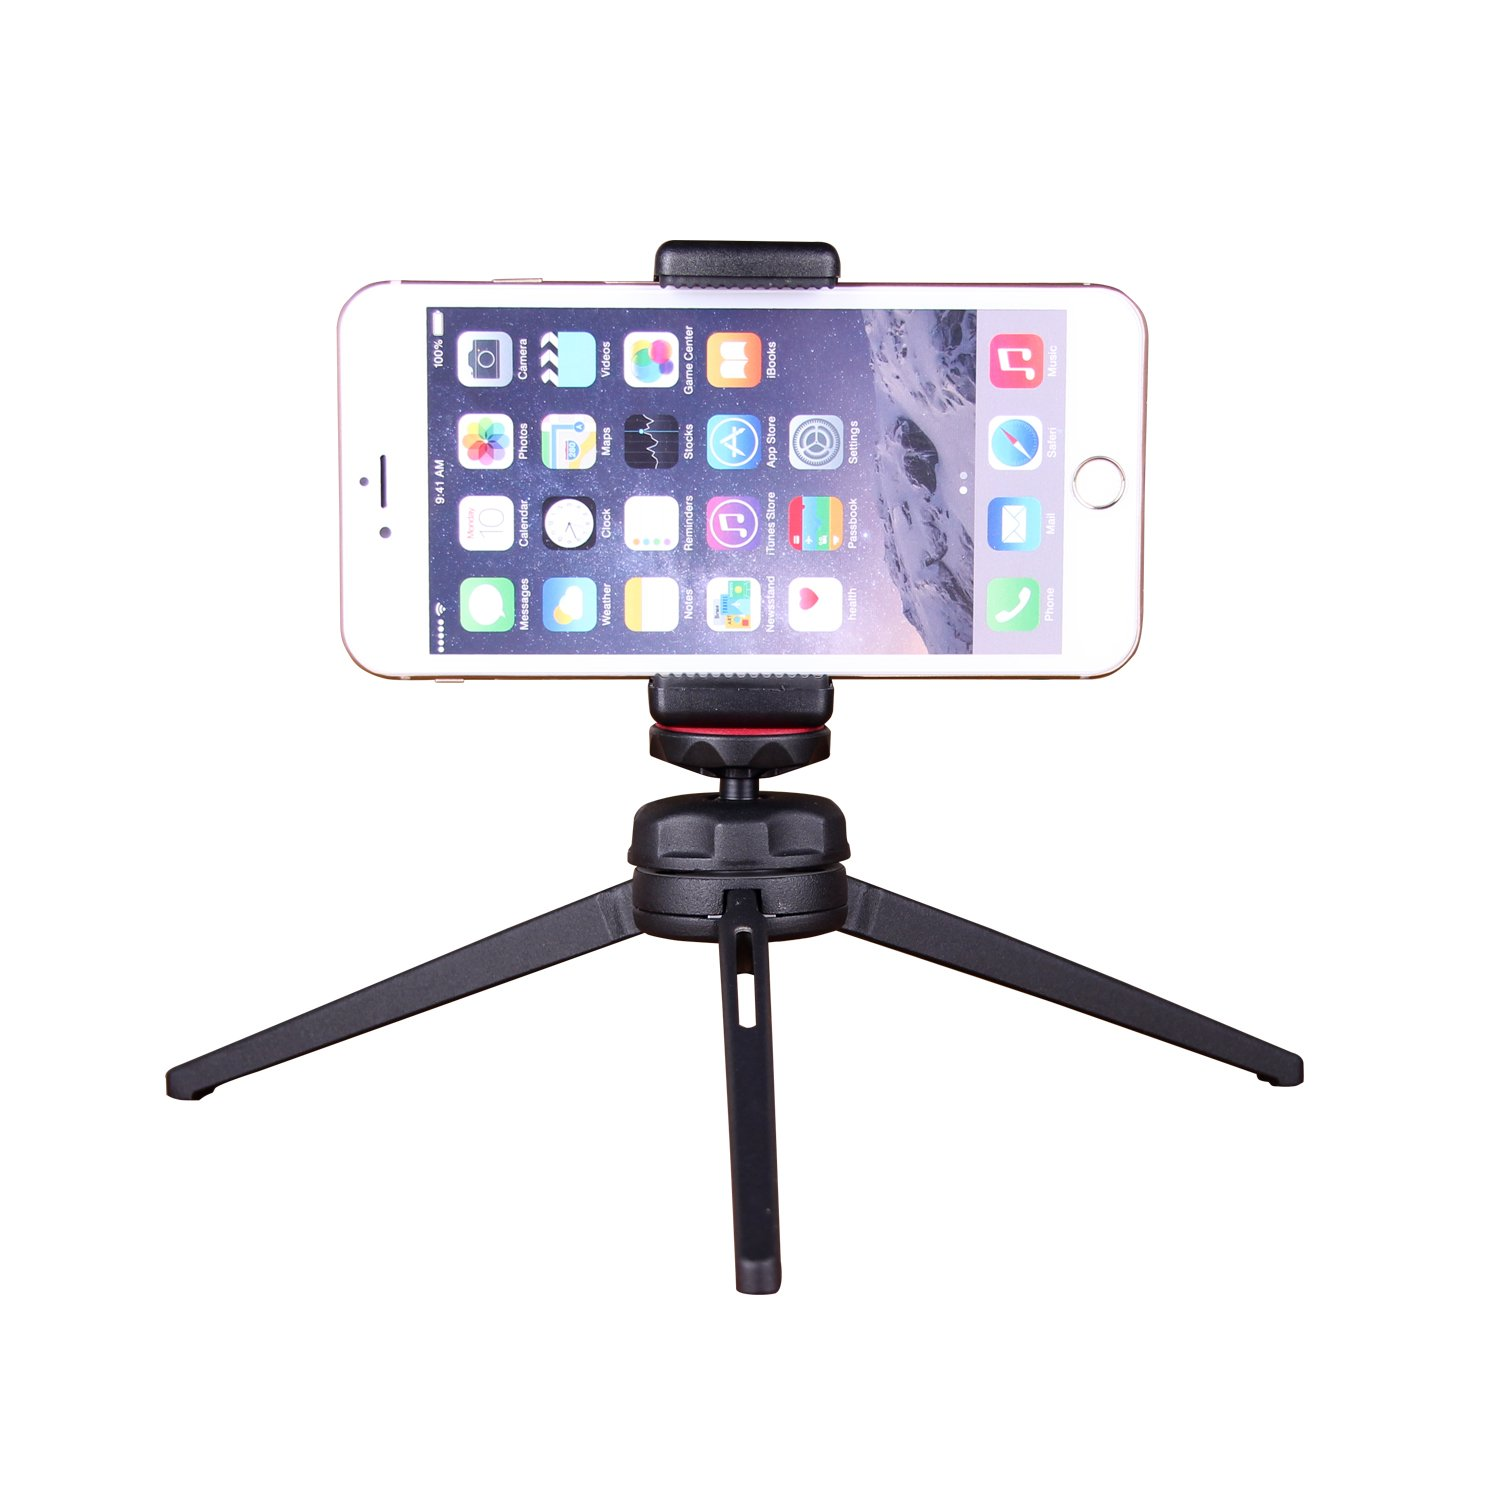 POLAM-FOTO Smartphone Tripod Adapter, Phone Tripod Mount for iPhone, Samsung, and others Smart phones, Phone Holder for Selfie Stick, Desktop Tripod, Monopod